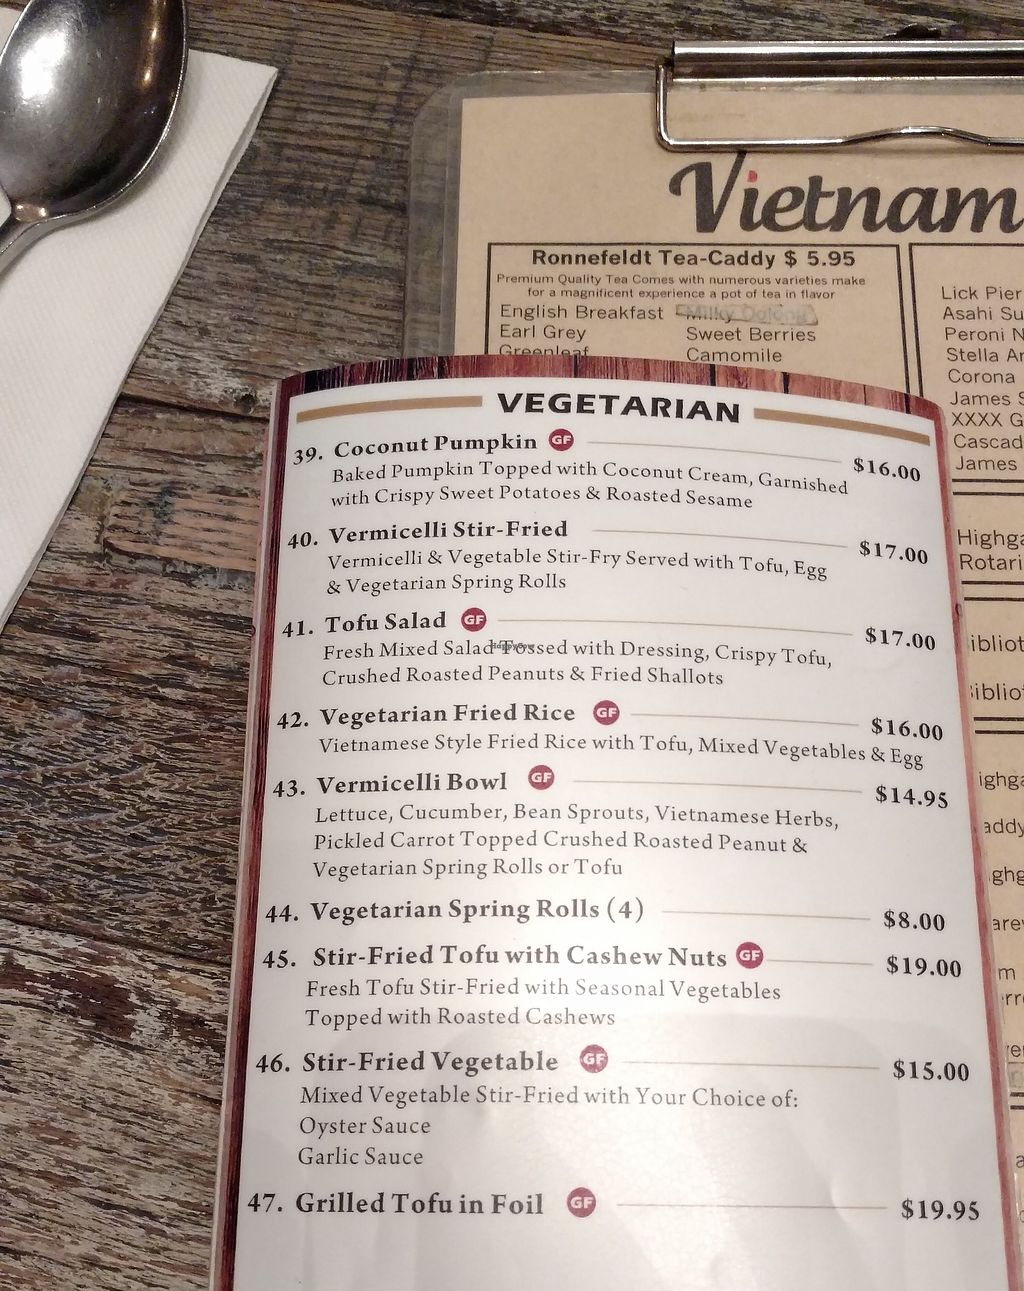 """Photo of Vietnam House Restaurant  by <a href=""""/members/profile/Beckanoid"""">Beckanoid</a> <br/>Vegetarian menu can be altered to be vegan on request <br/> October 9, 2017  - <a href='/contact/abuse/image/102106/313764'>Report</a>"""